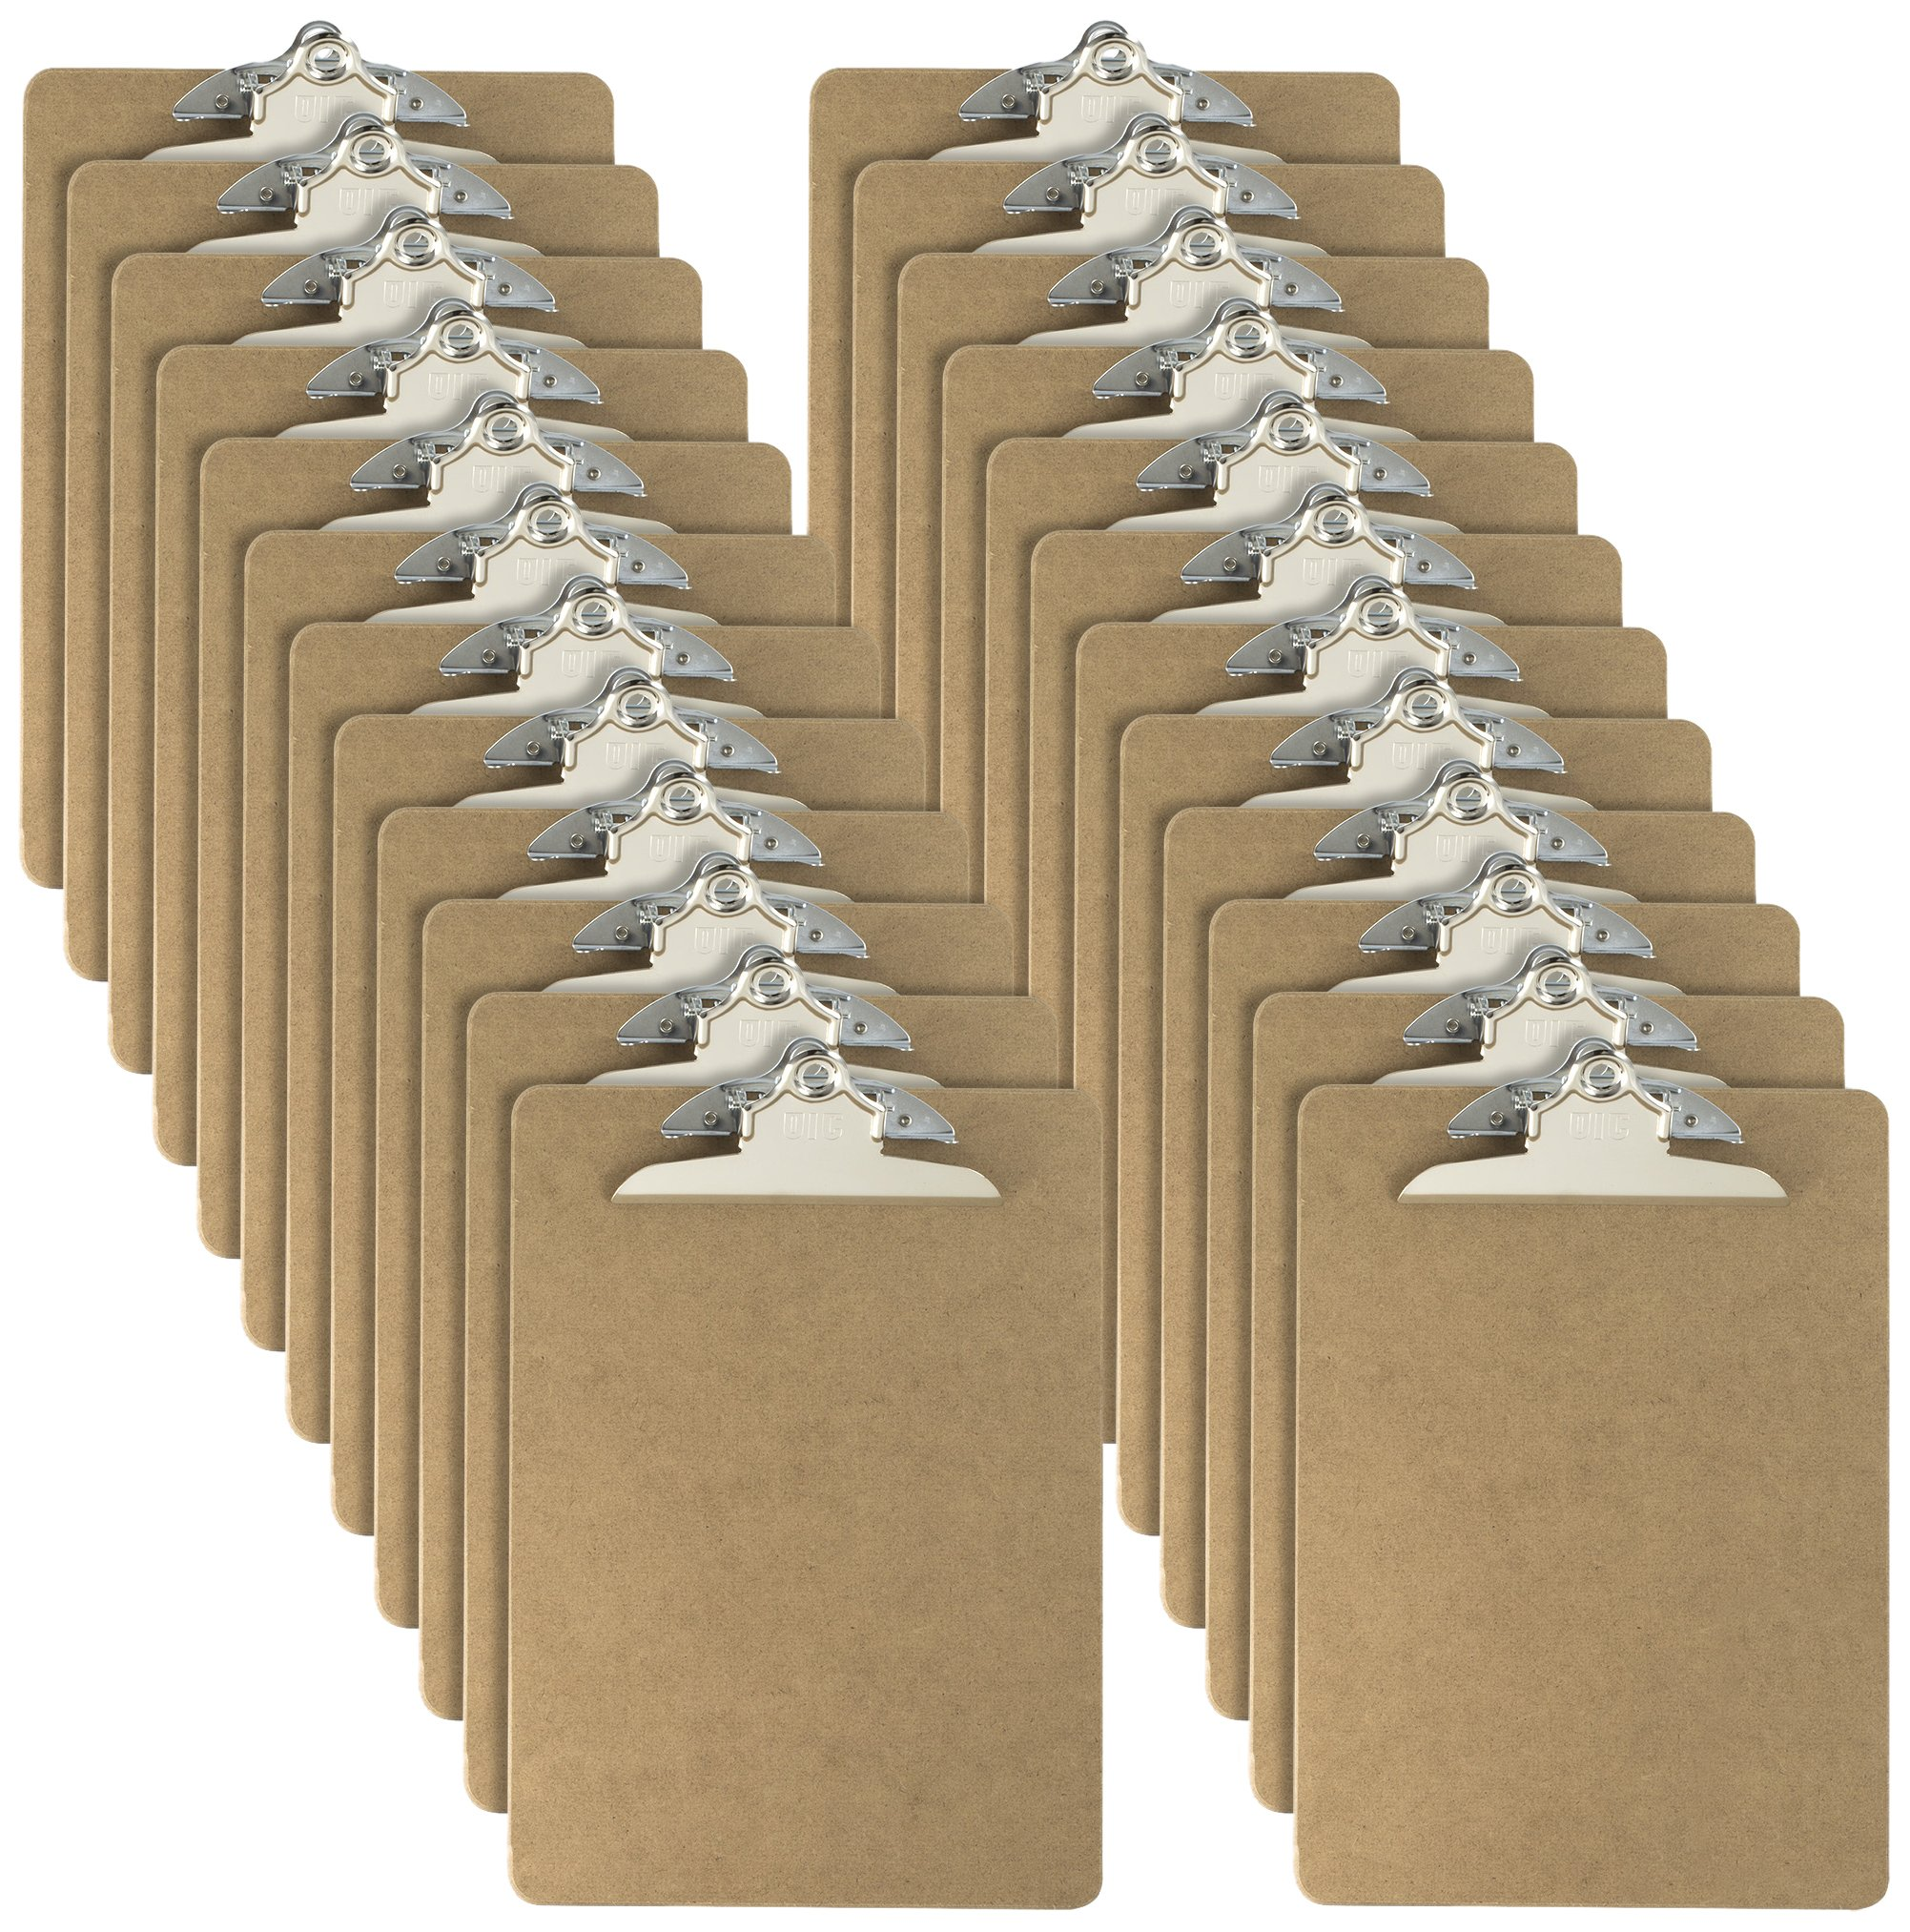 Officemate Letter Size Wood Clipboards, 6 Inch Clip, 24 Pack Clipboard, Brown (83724) by Officemate